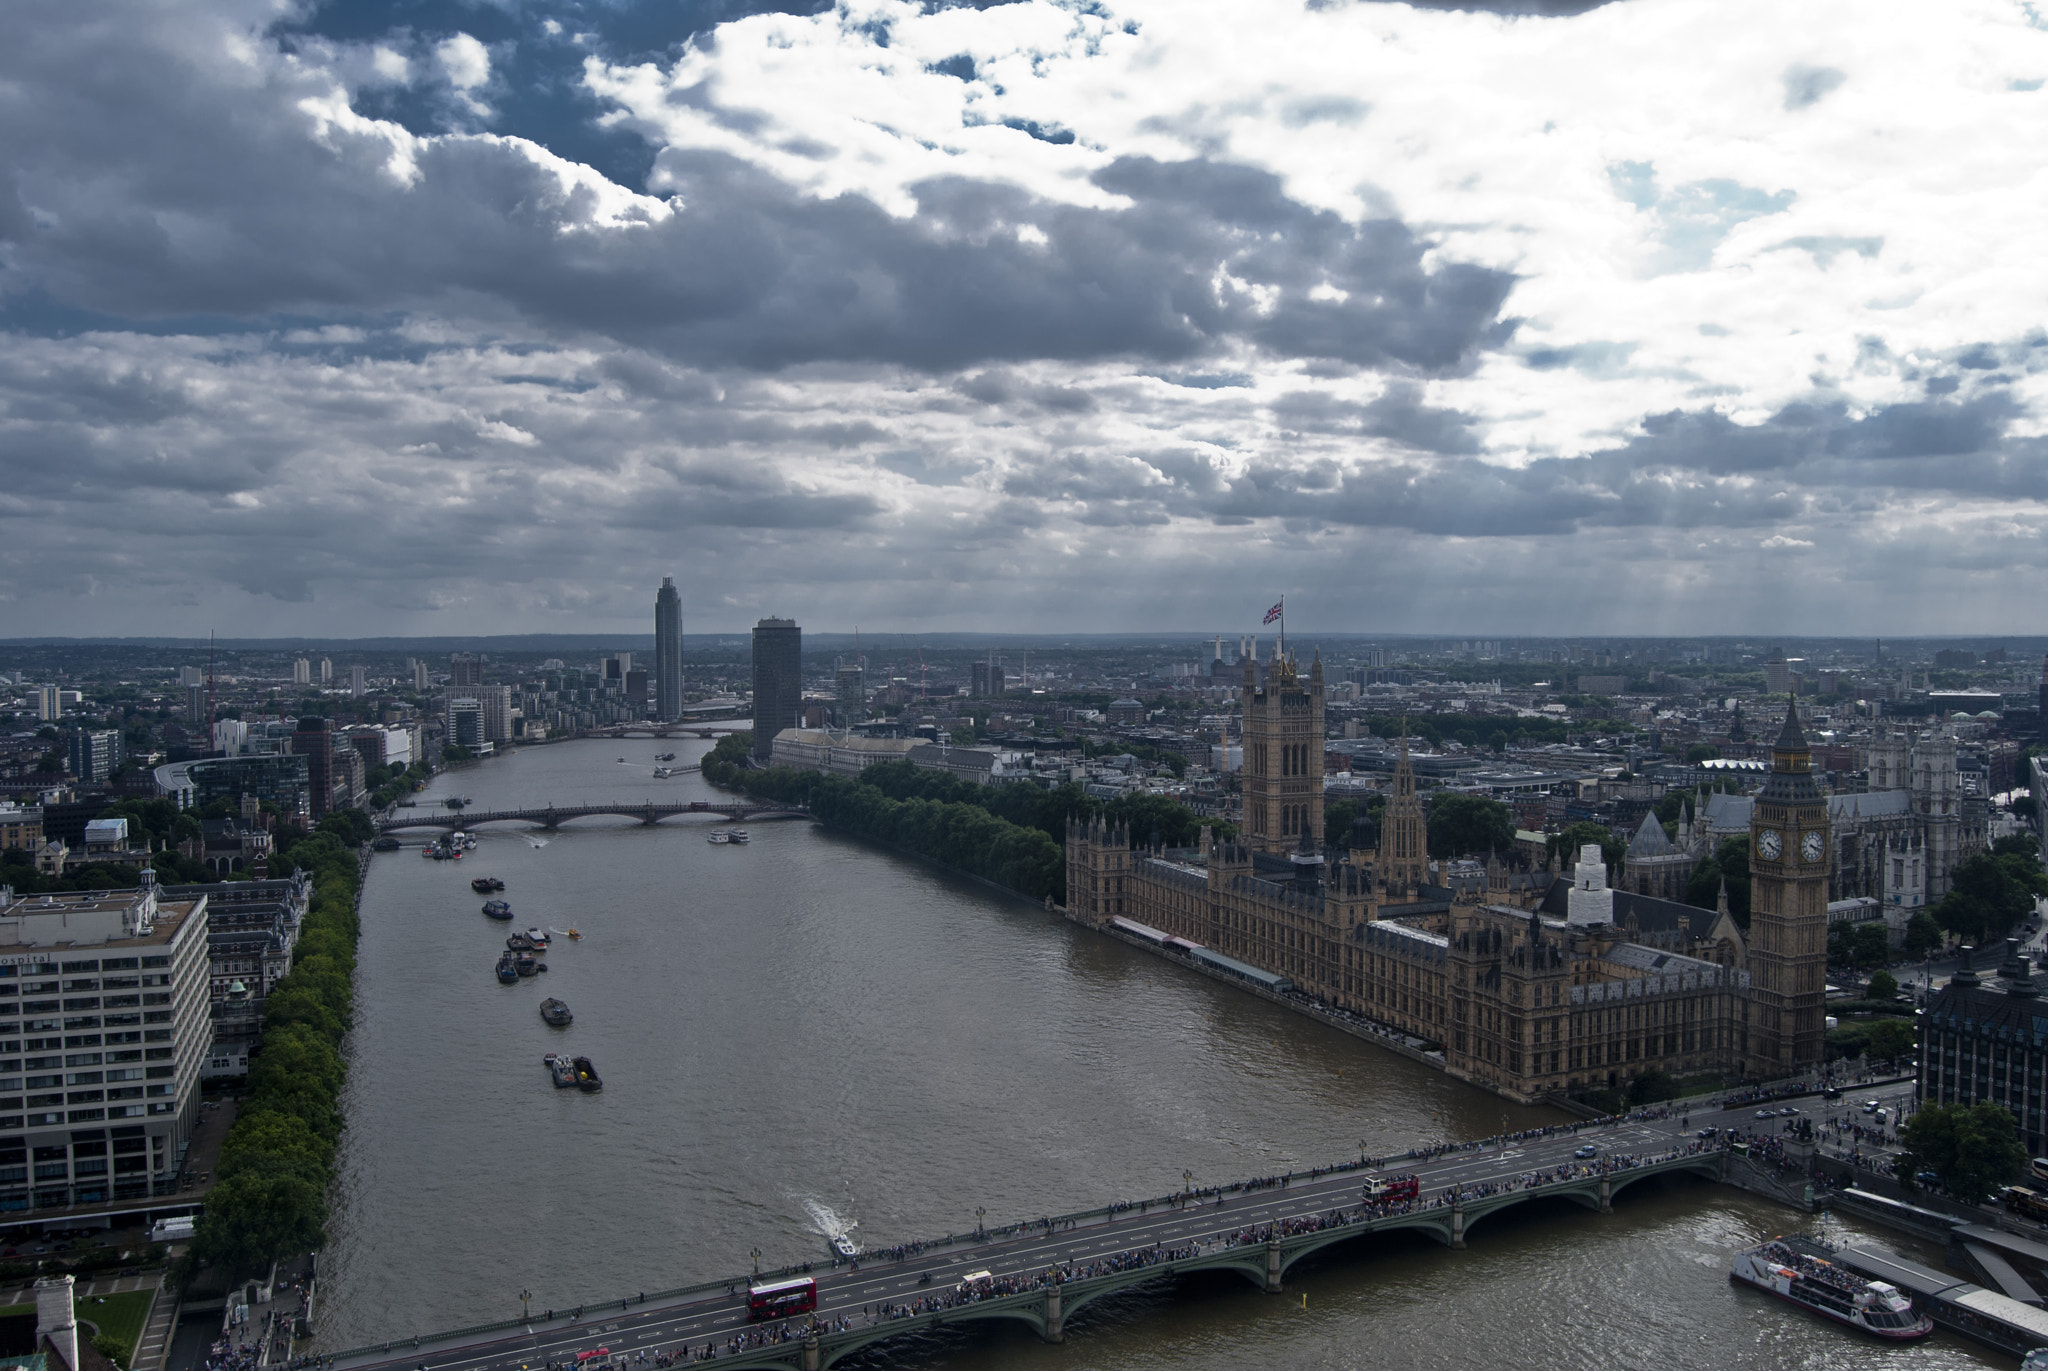 Photograph Thames by Javier R. R. on 500px